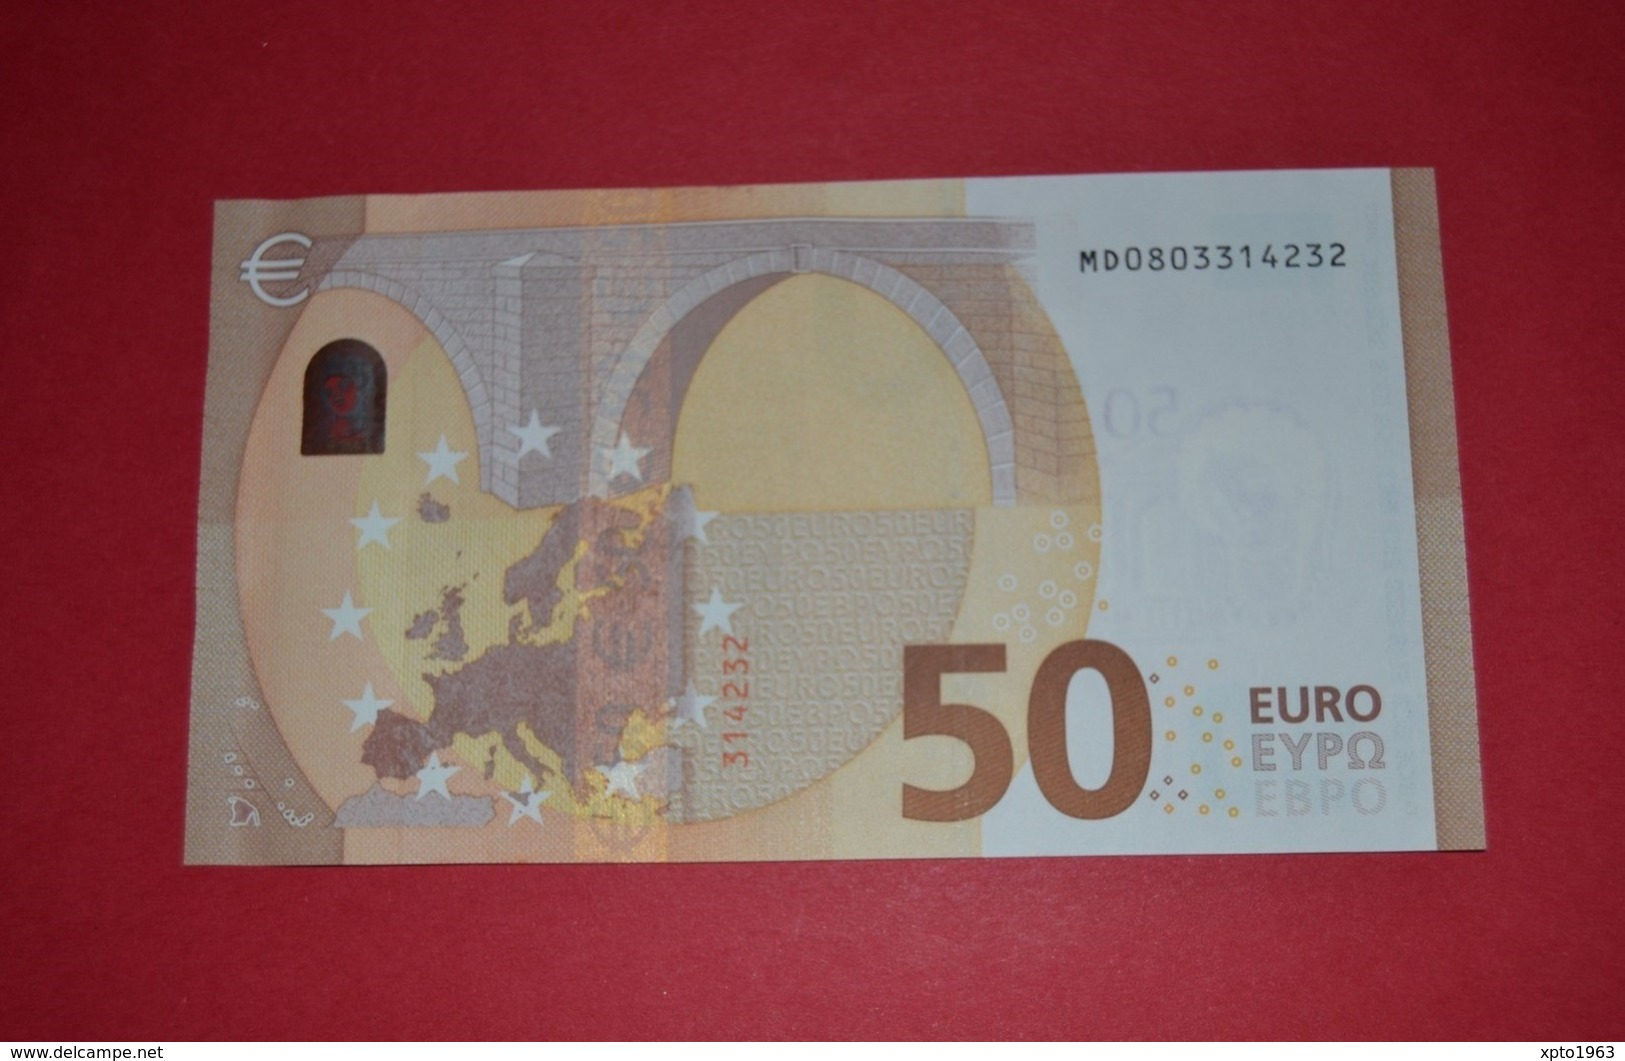 50 EURO M005 D5 - PORTUGAL - M005D5 - MD0803314232 - DRAGHI - UNC - NEUF - FDS - EURO